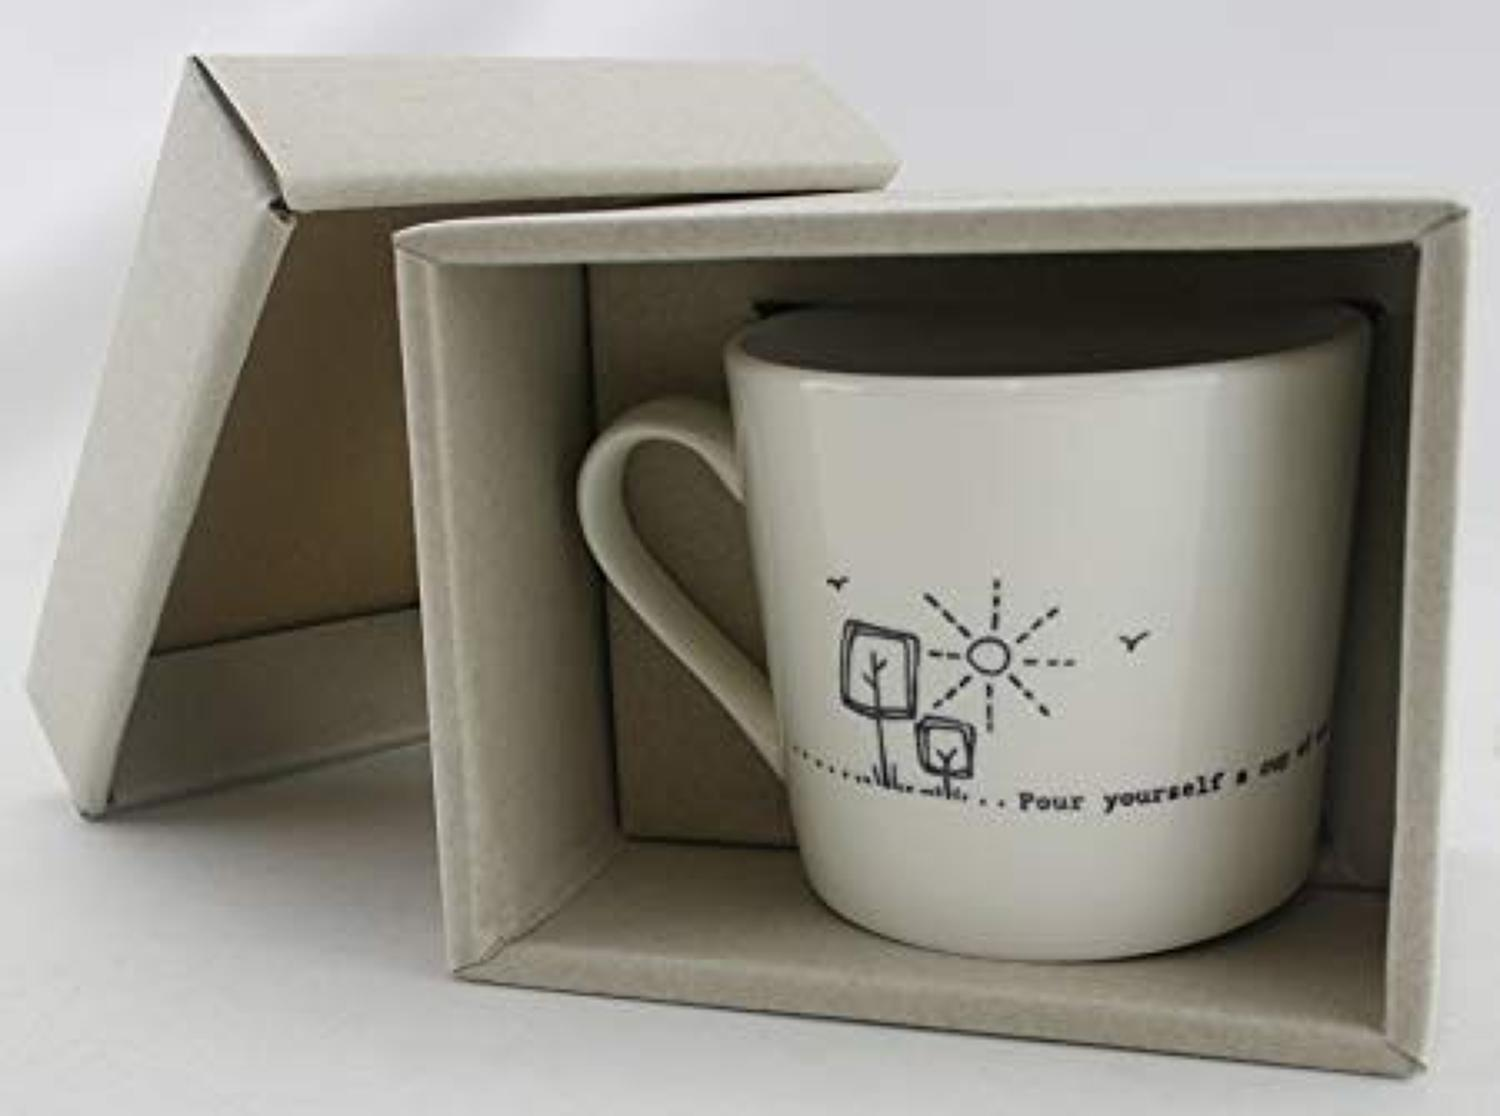 East of India - Boxed porcelain wobbly mugs - pour yourself a cup of a